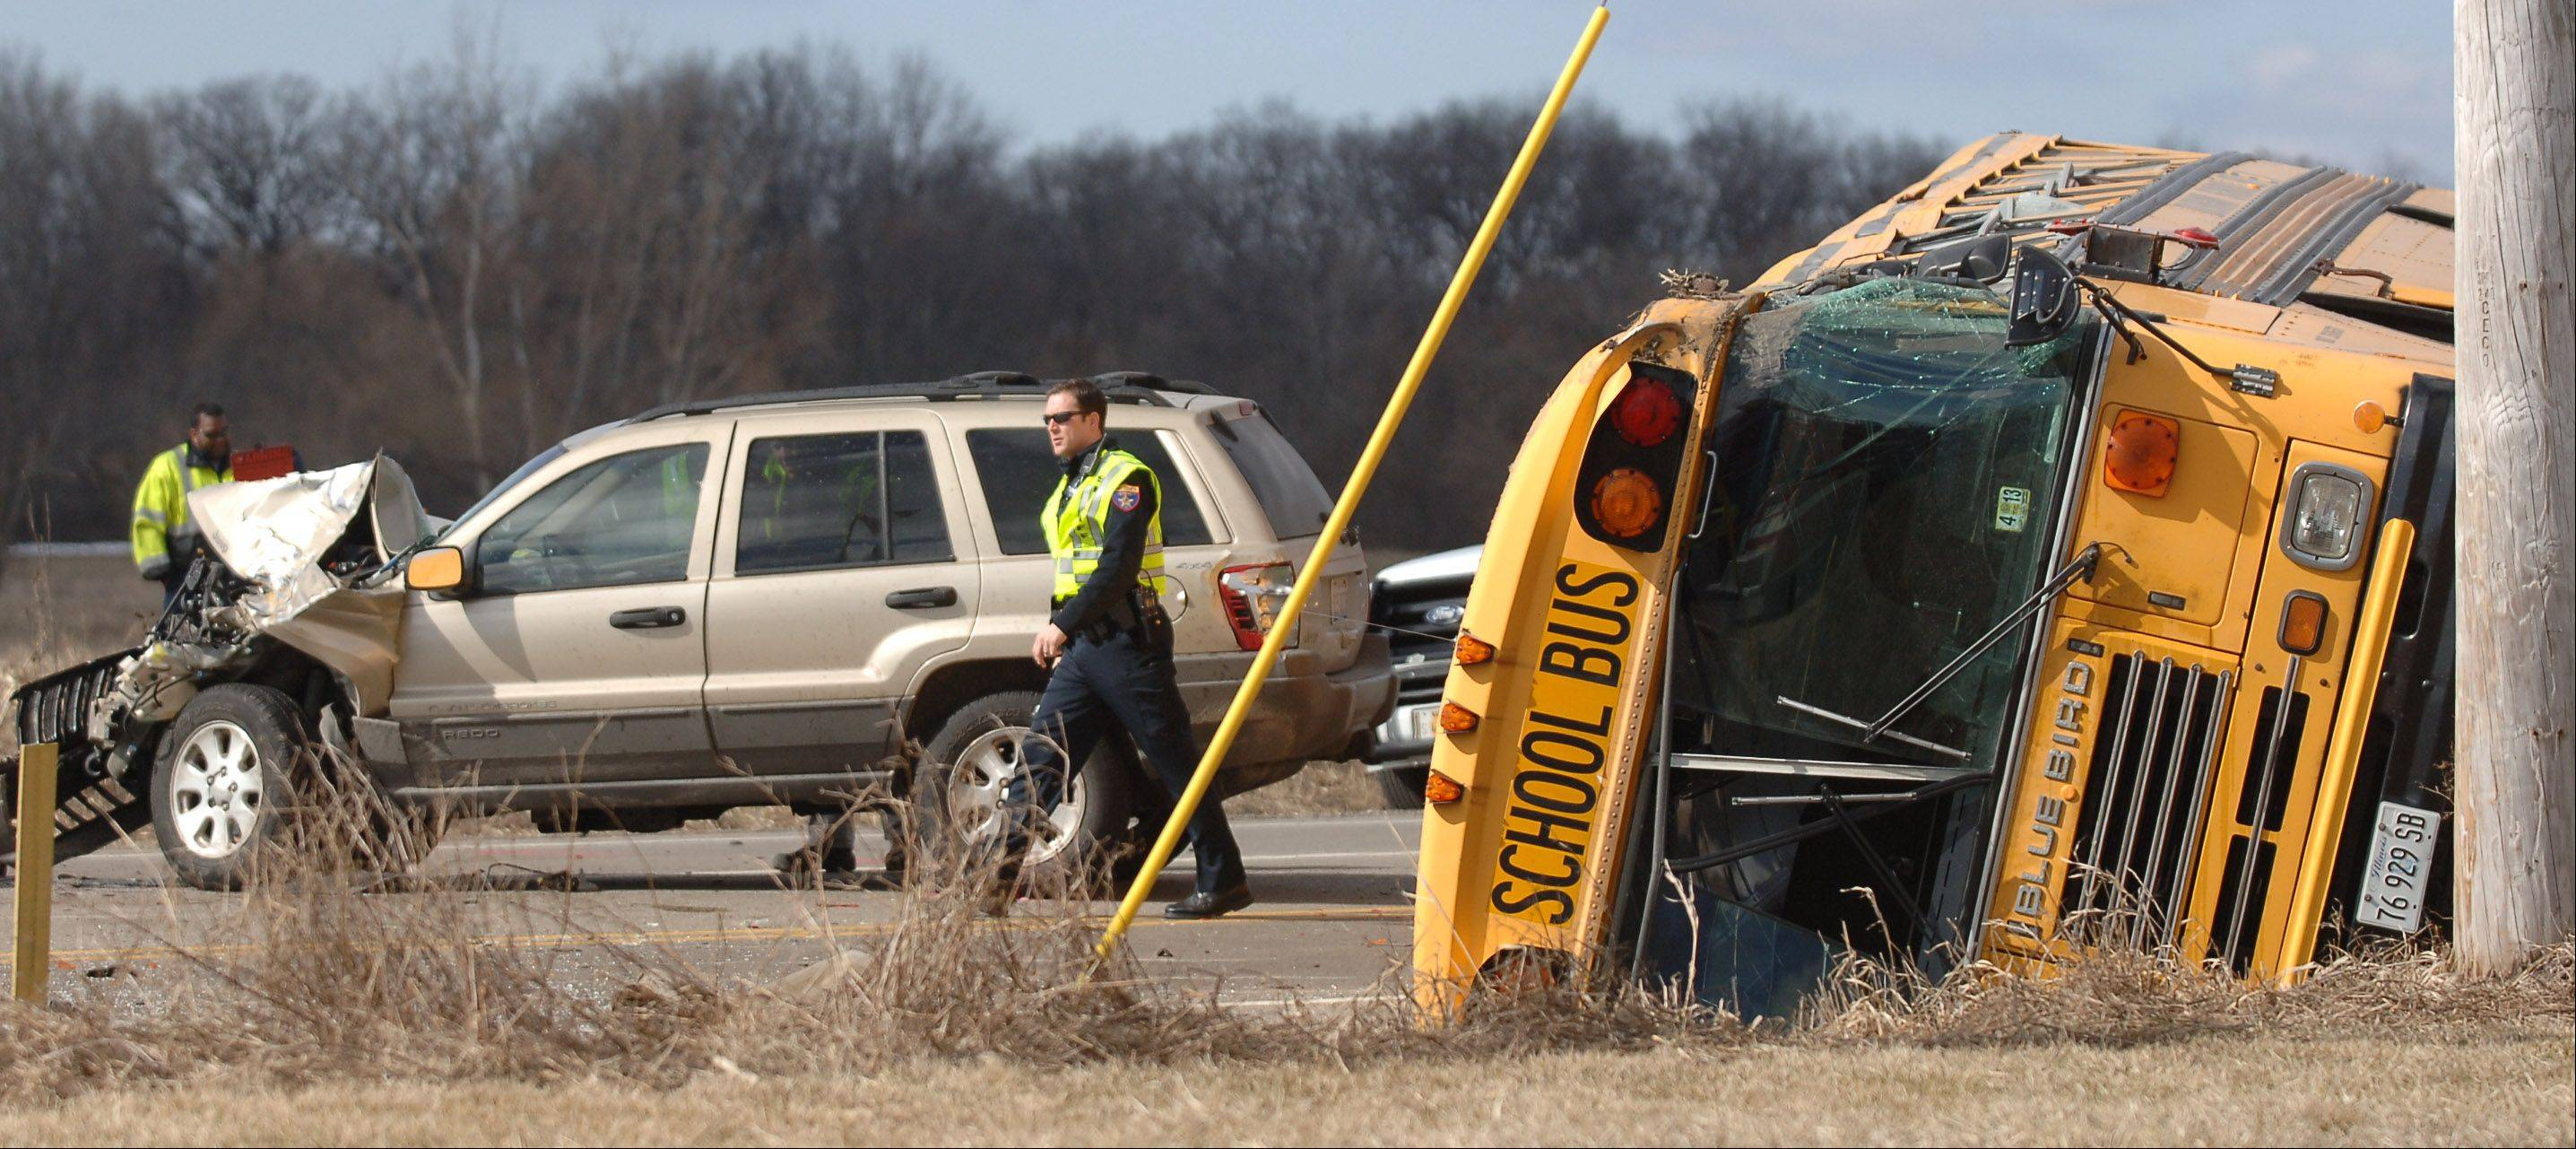 A school bus came to rest on its side following a crash Friday morning at Route 173 and N. Kilbourne Road near Wadsworth.